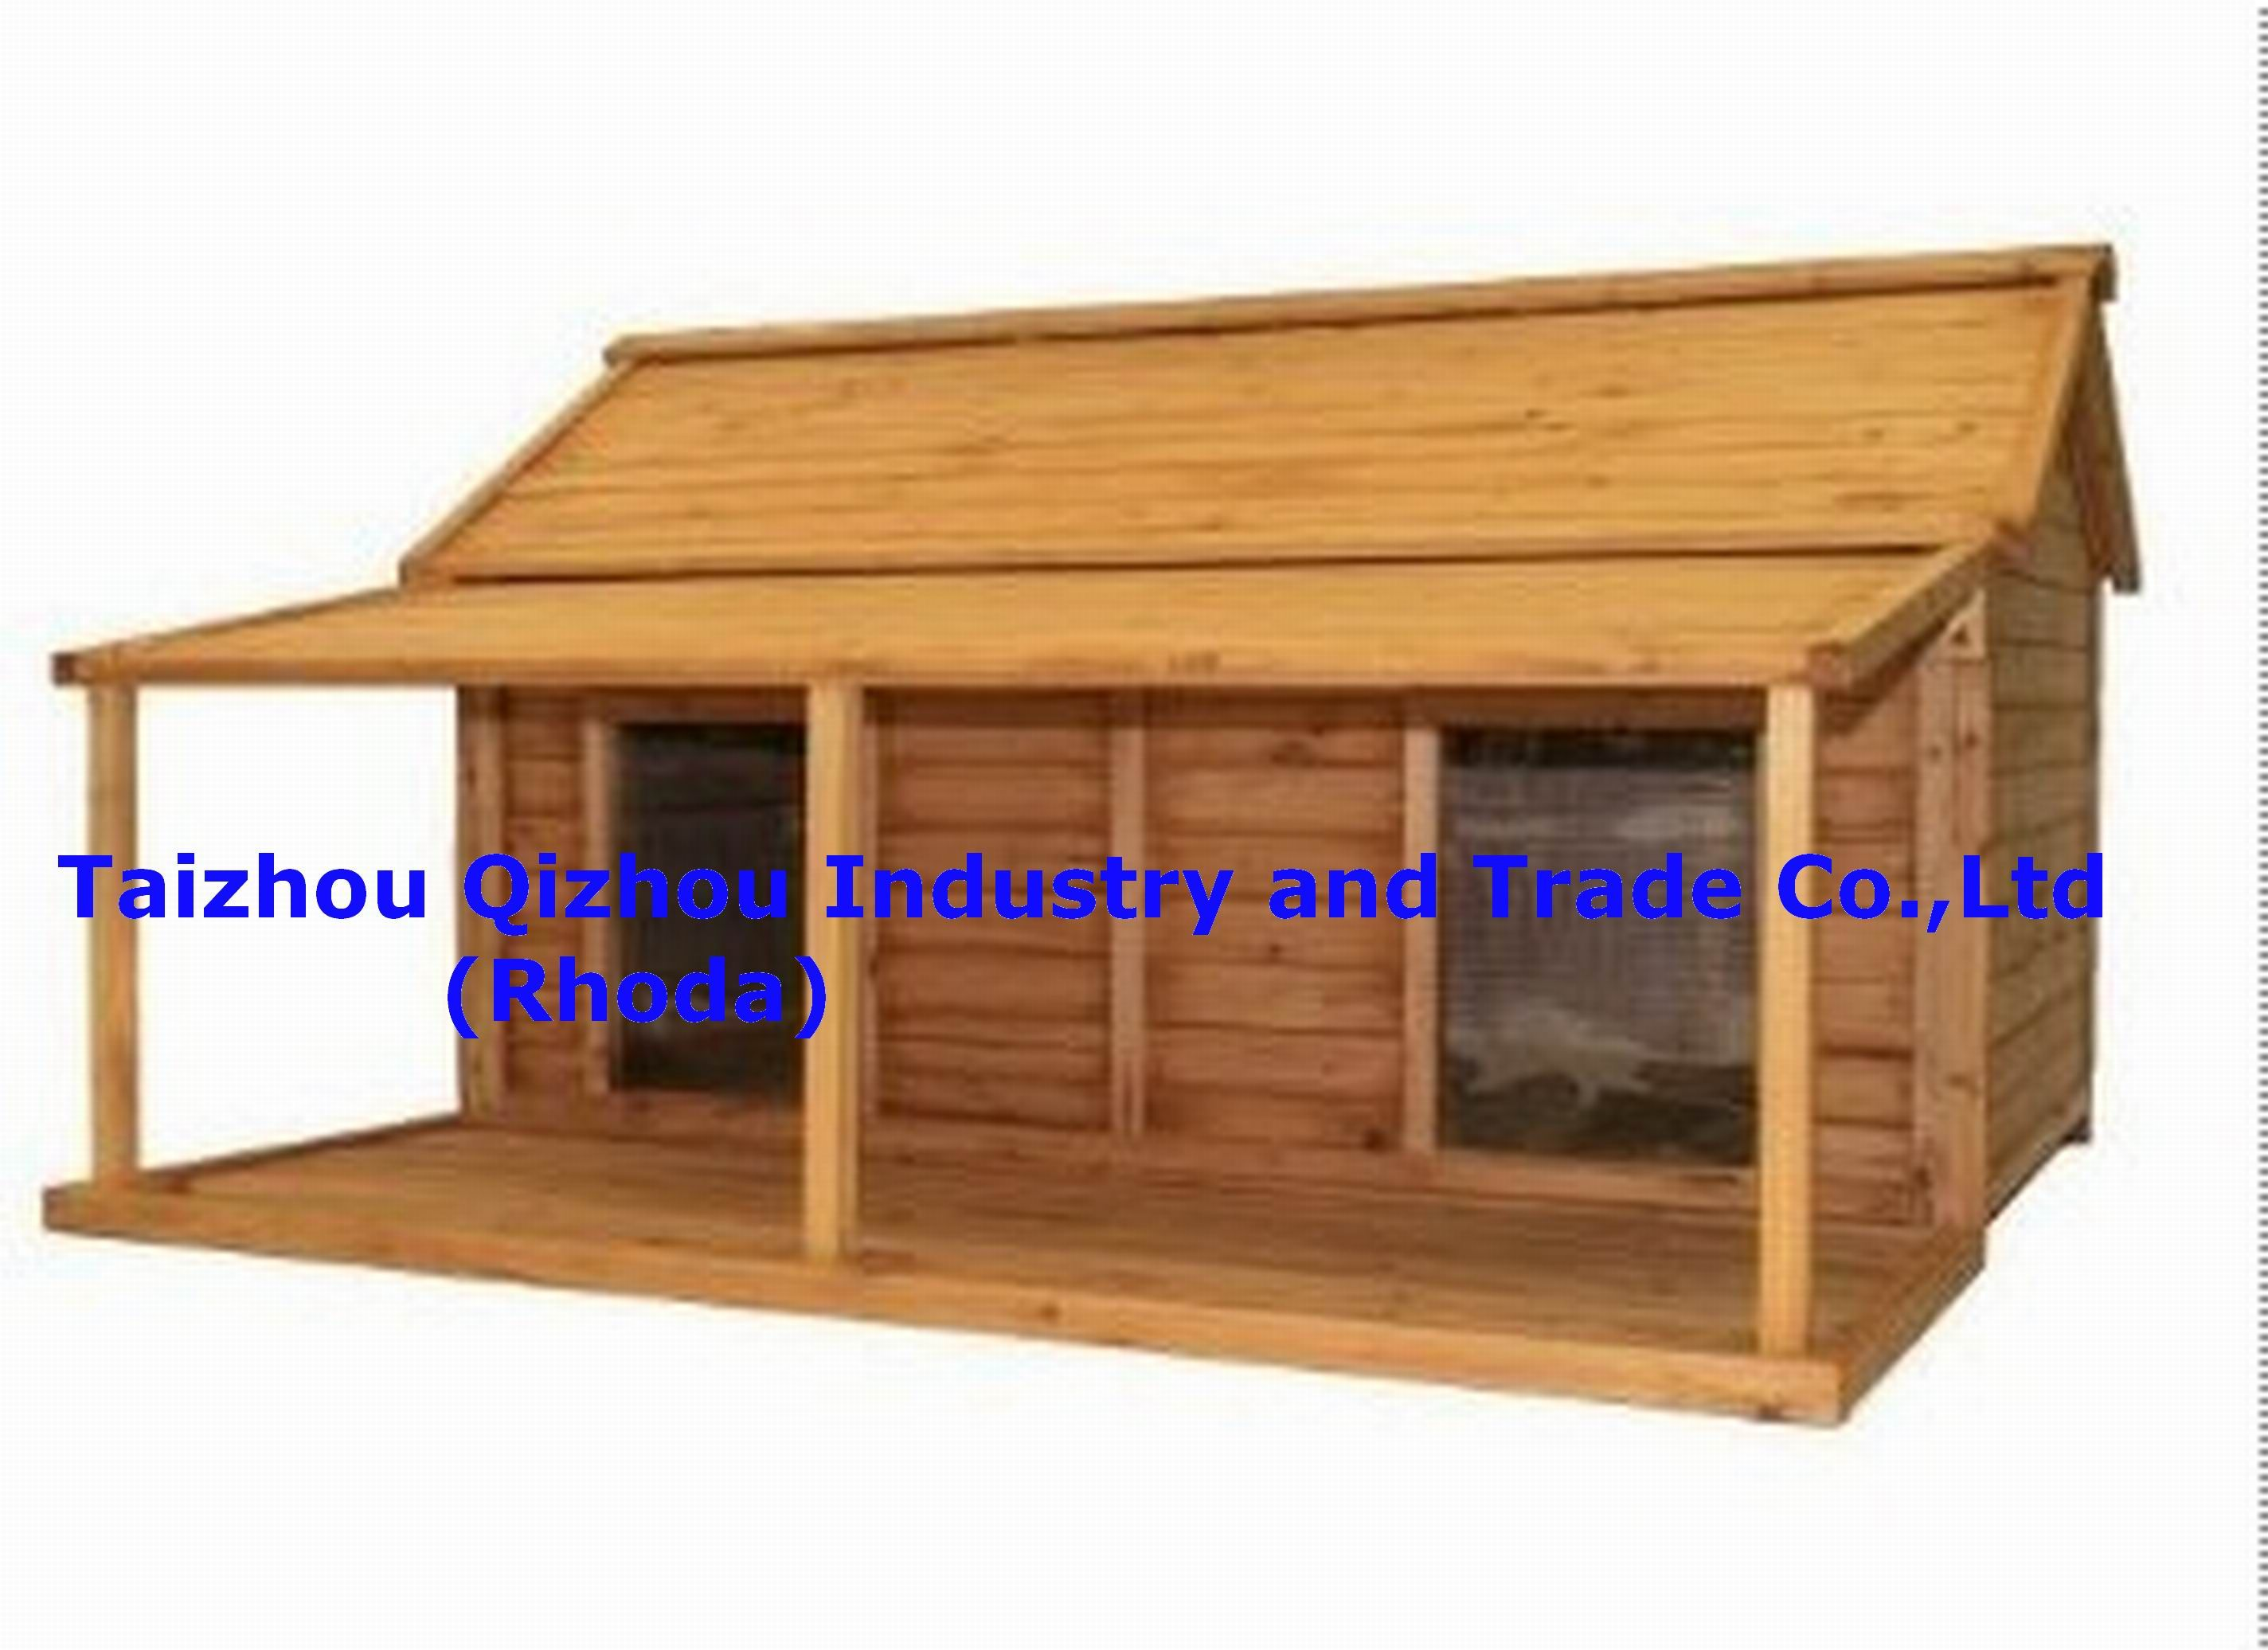 Free Double Dog House Plans Cedarwooddoghouses Com A Renown Hand